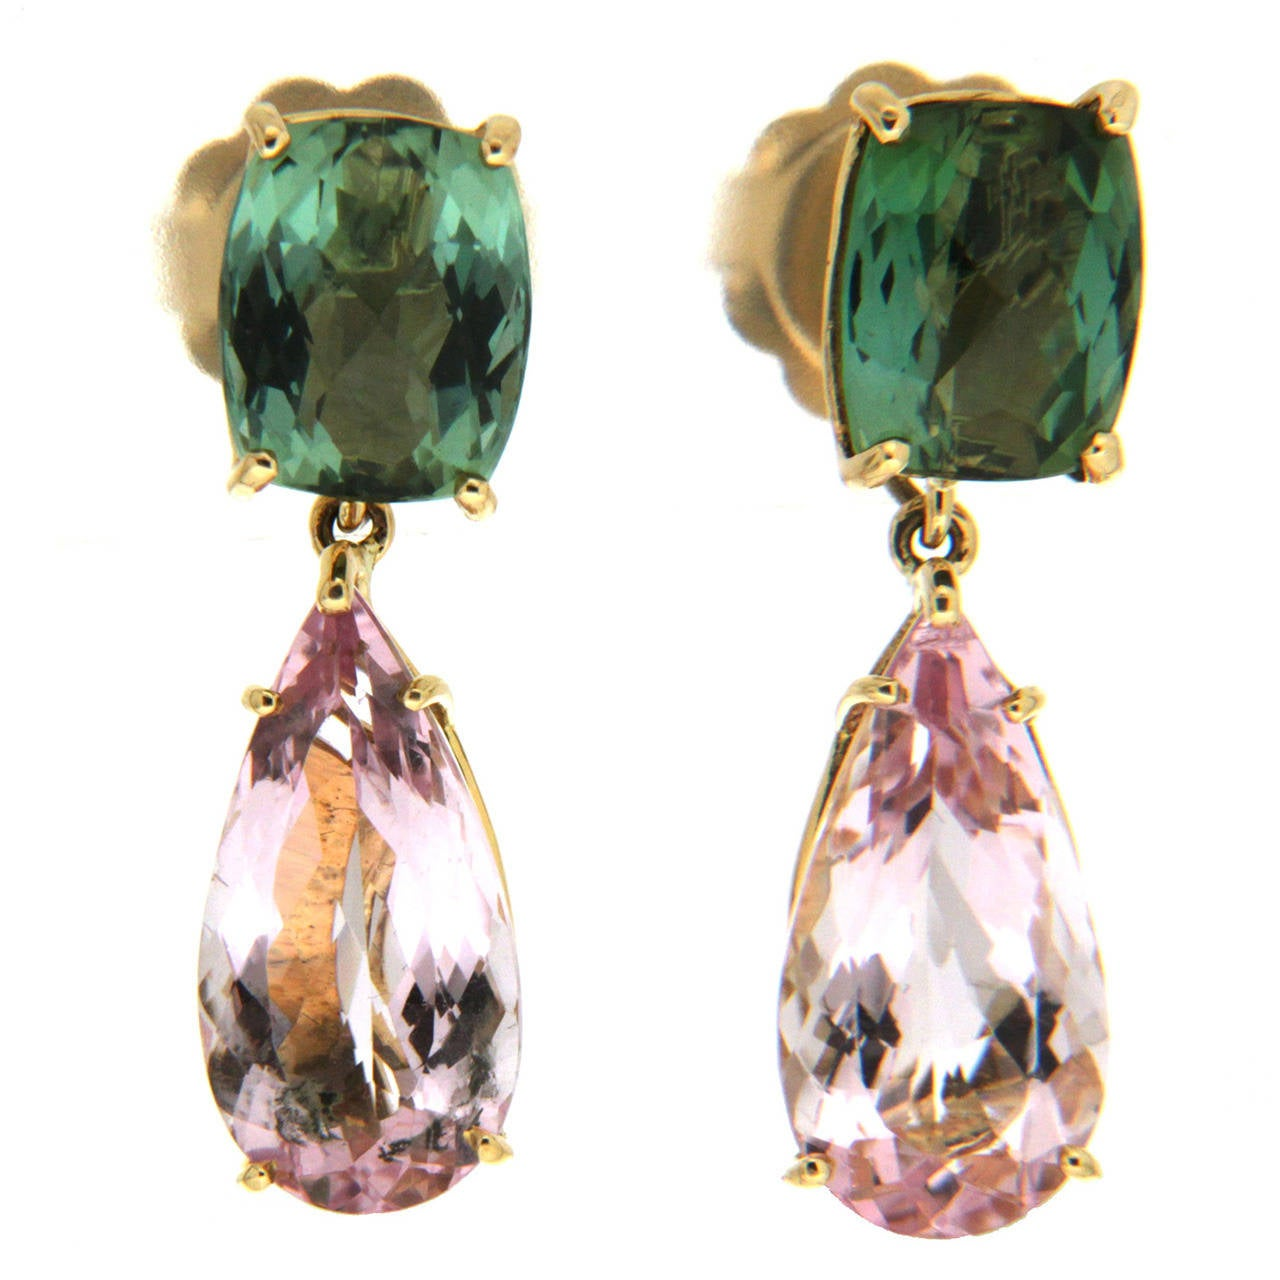 Green Tourmaline Morganite Gold Earrings 1